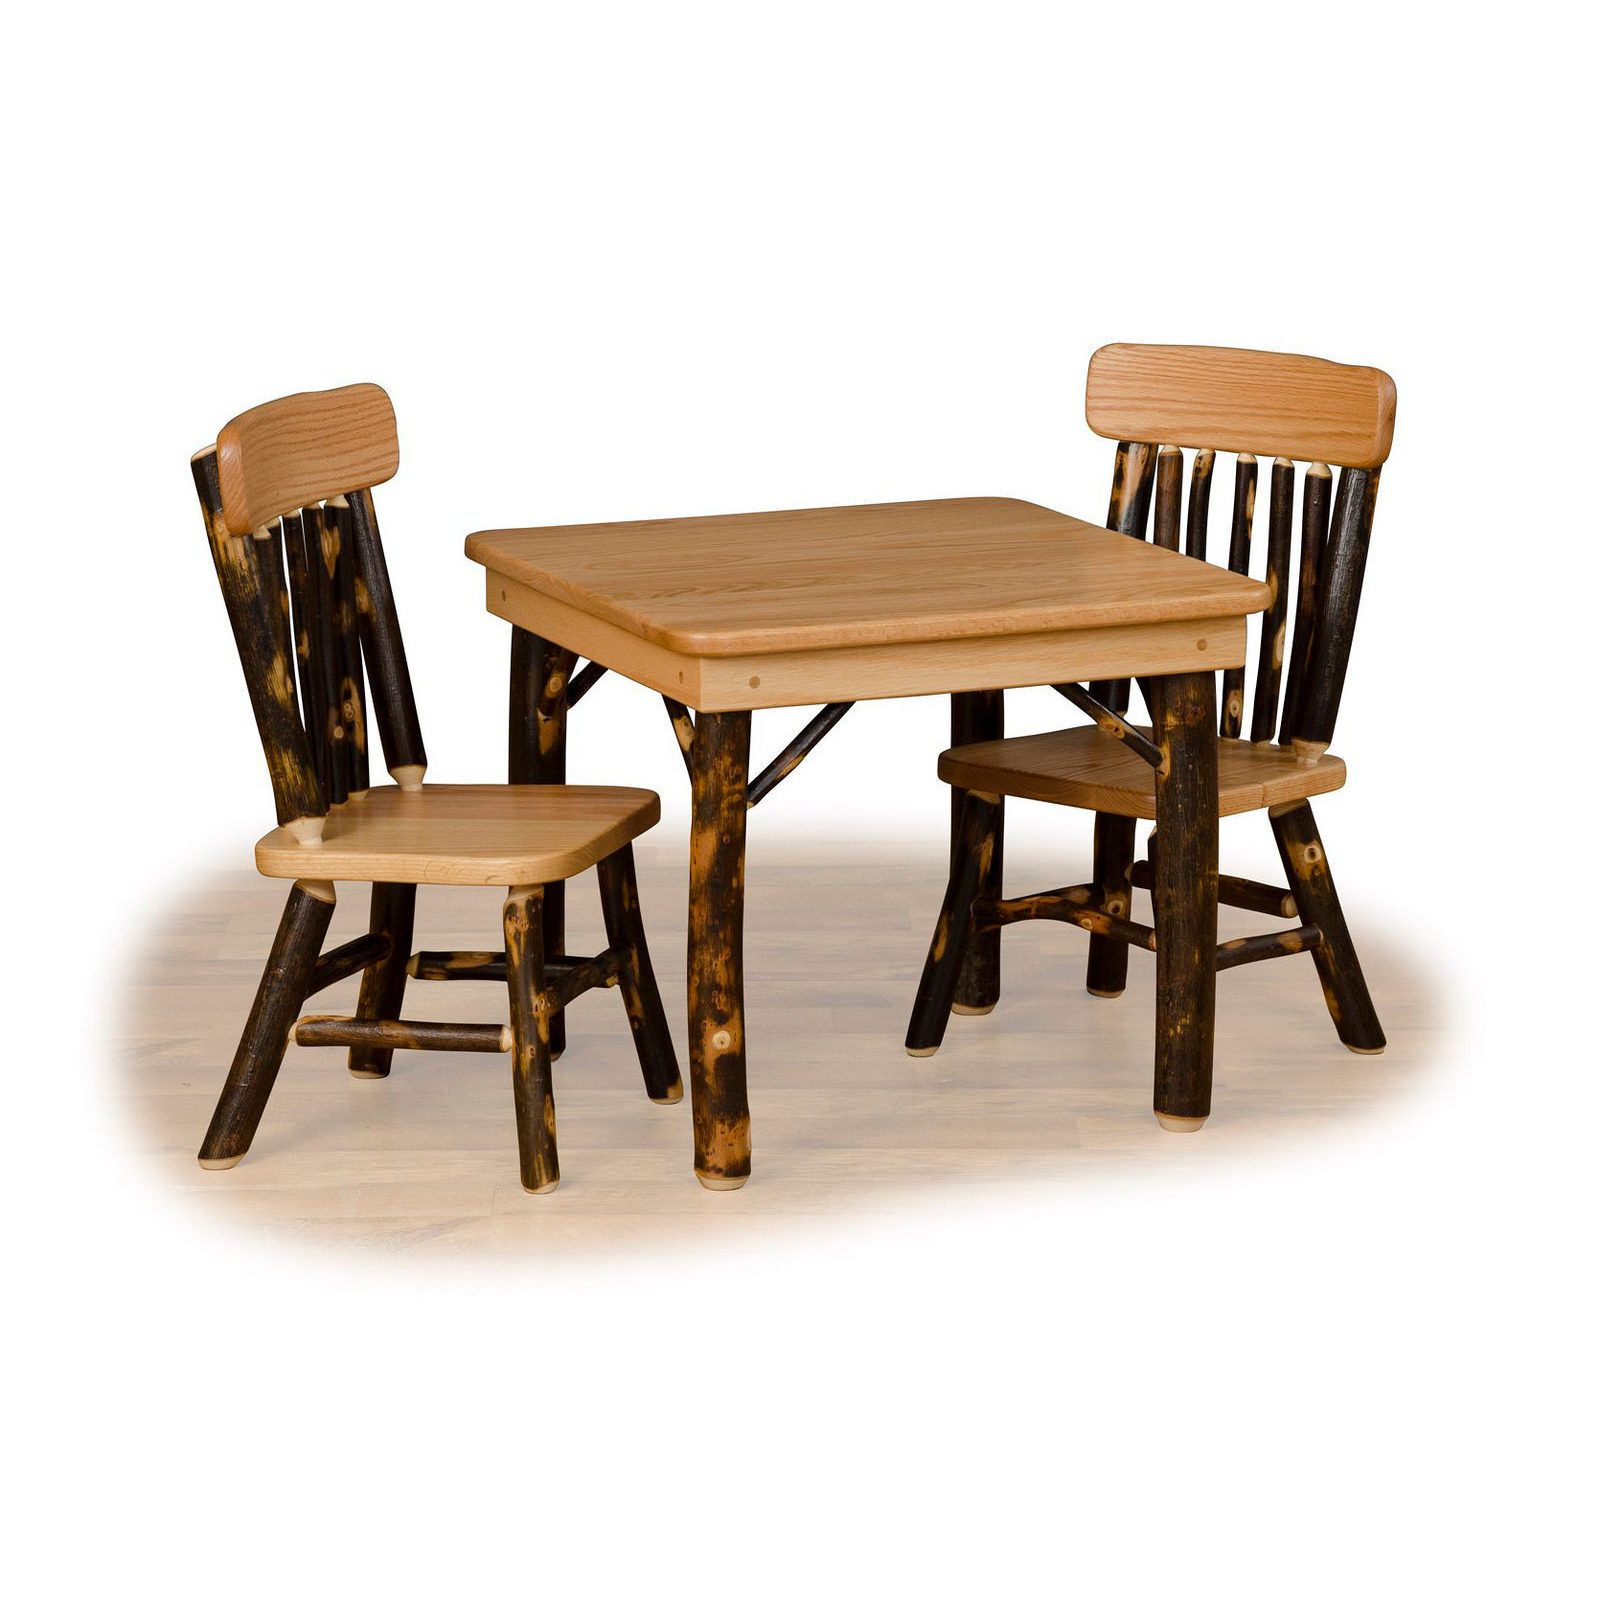 Finely Made By The Pennsylvania Amish This Children S Table Set Will Last For Generations